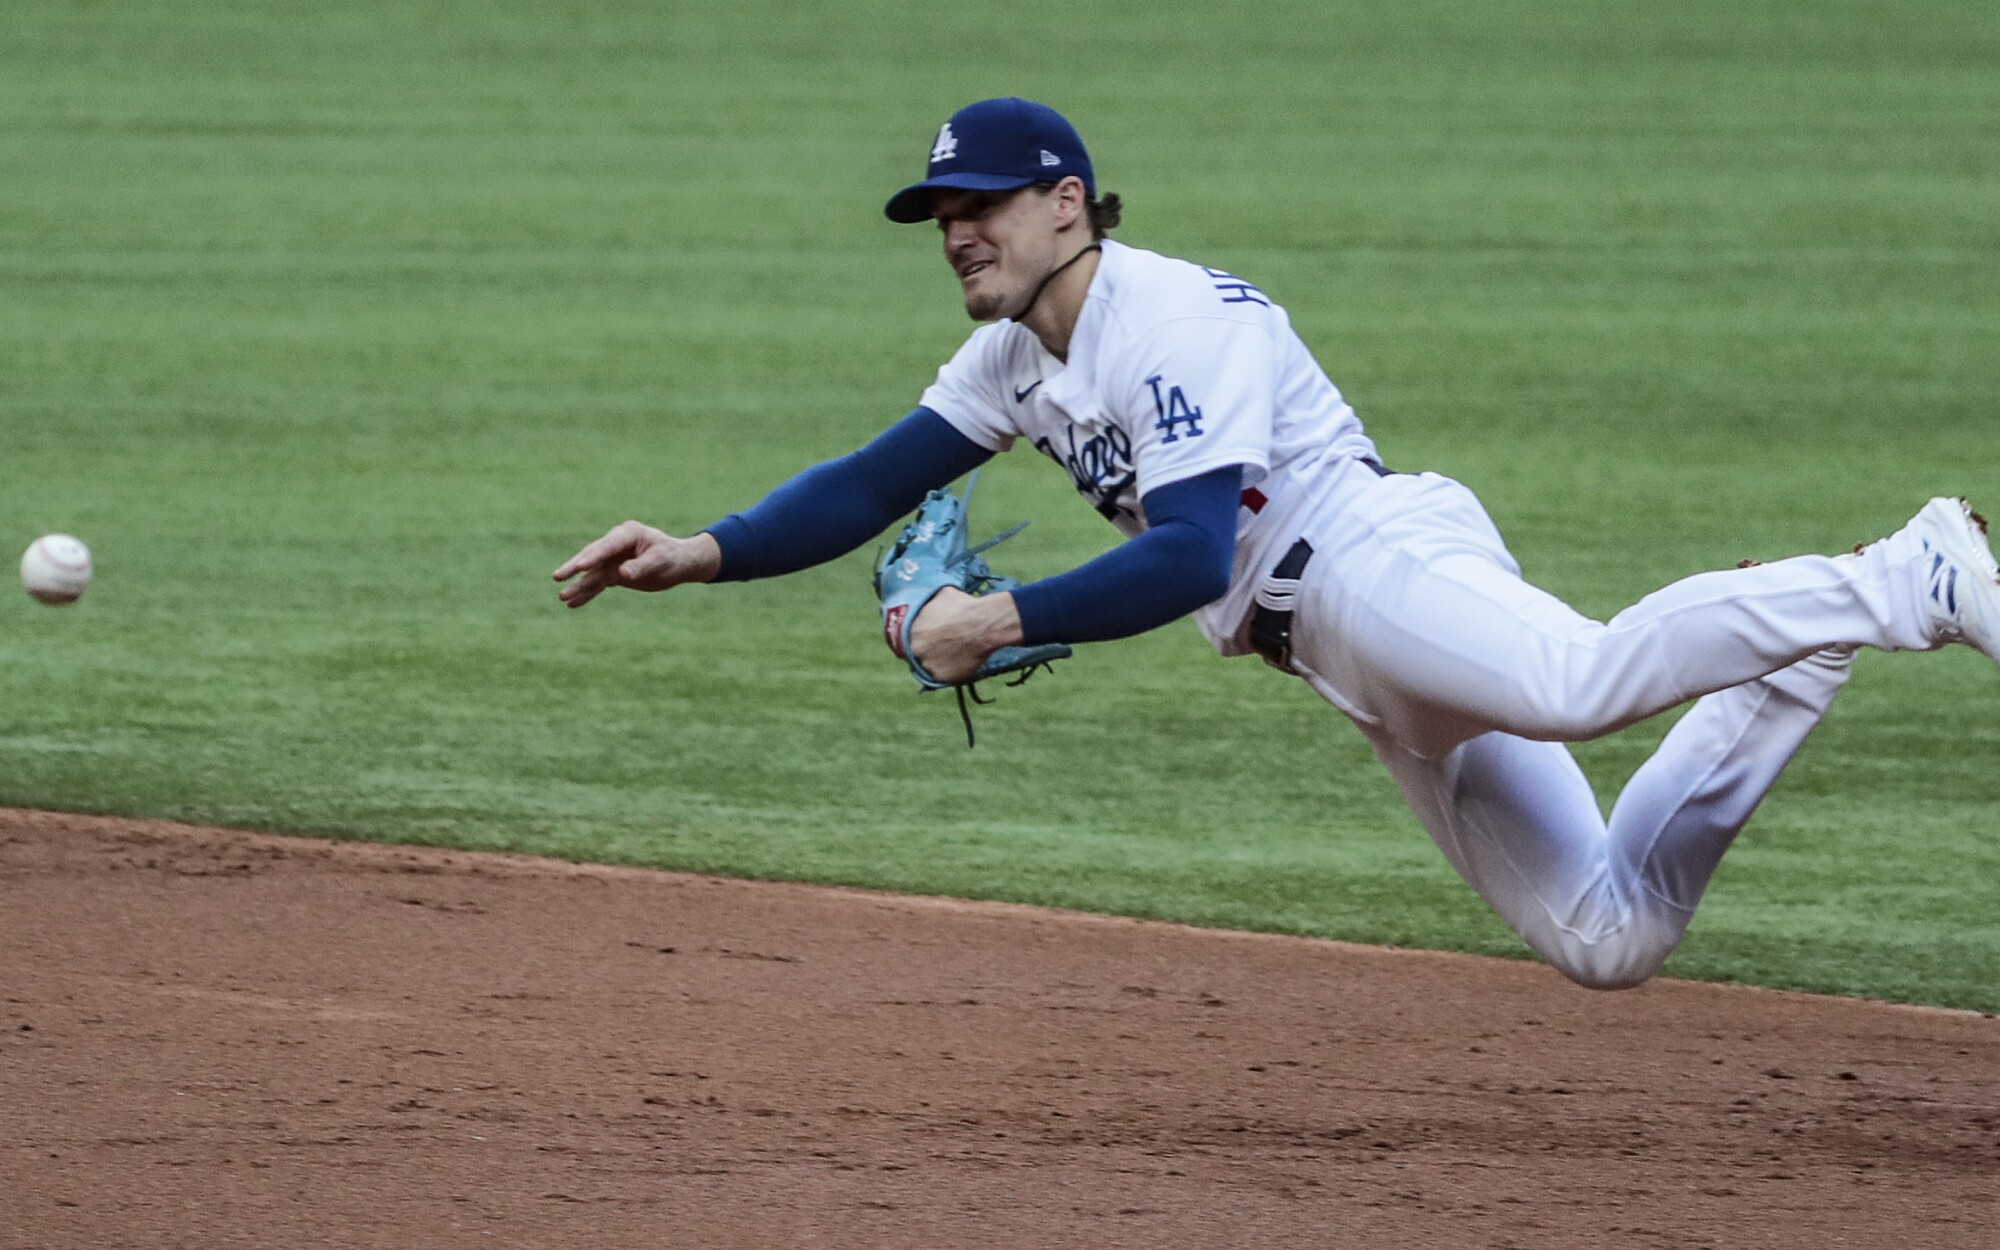 Dodgers second baseman Kiké Hernández tries to make a throw to first during the second inning.